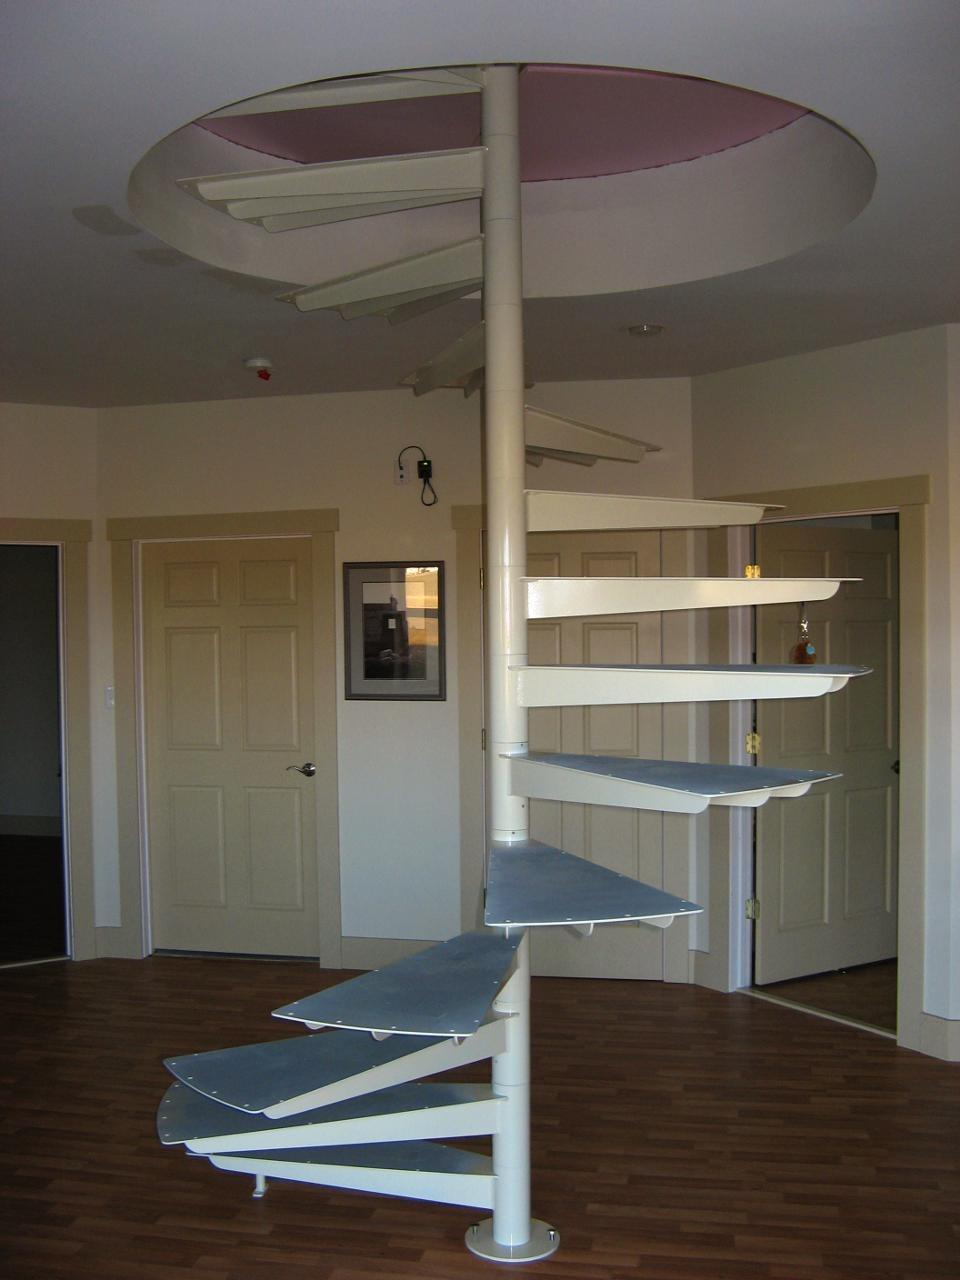 Simple Spiral Ways for Selecting Railings